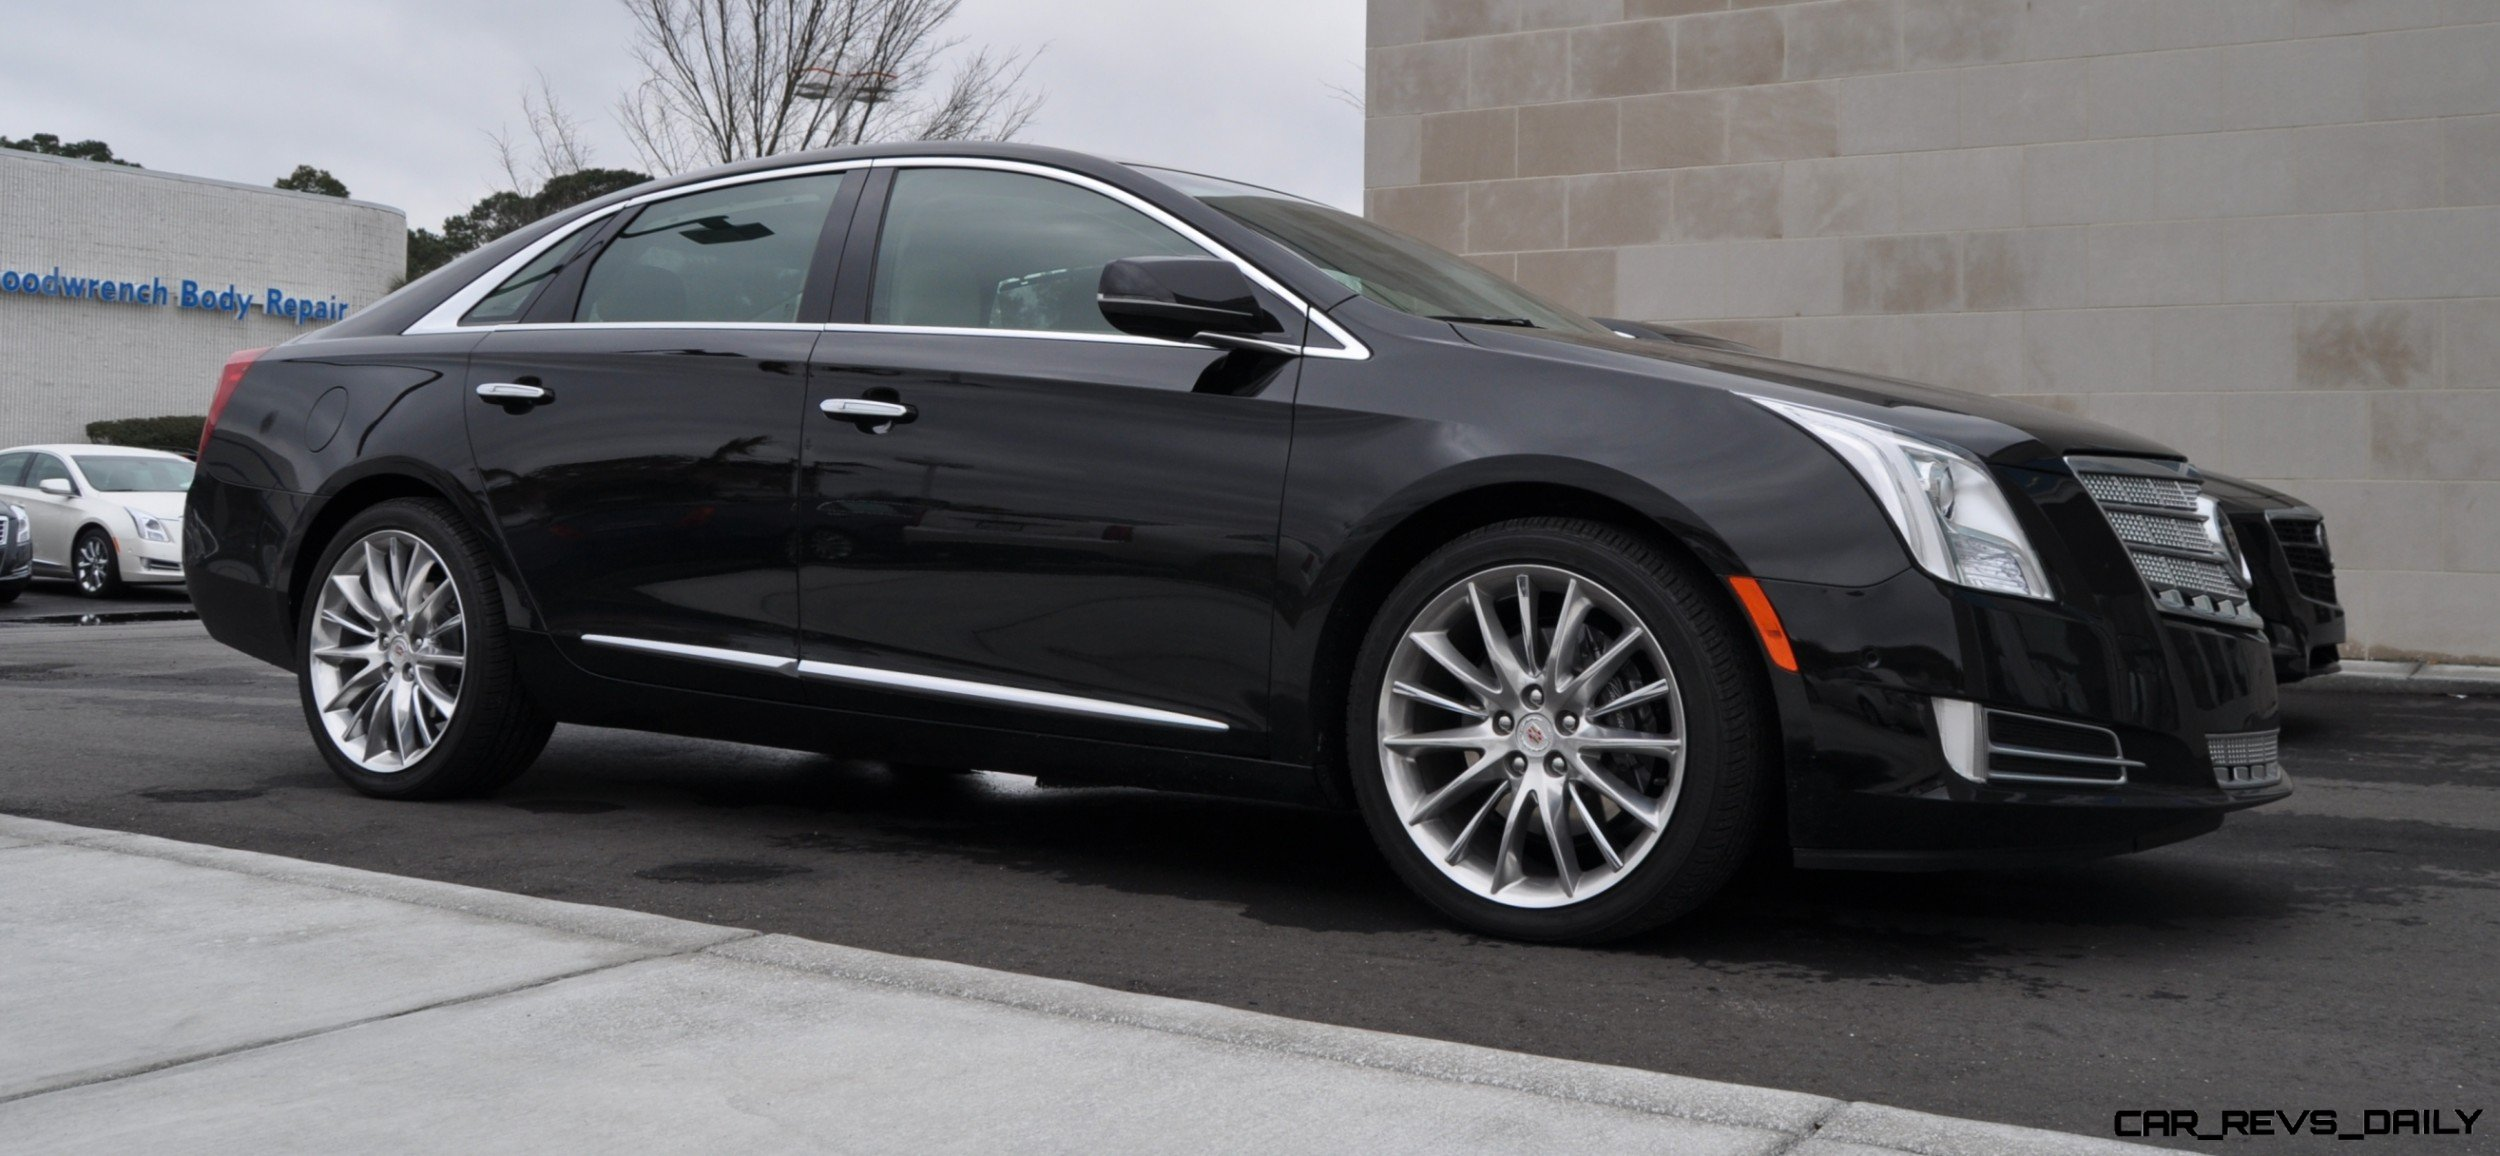 2014 cadillac xts4 platinum vsport first drive video and photos 7